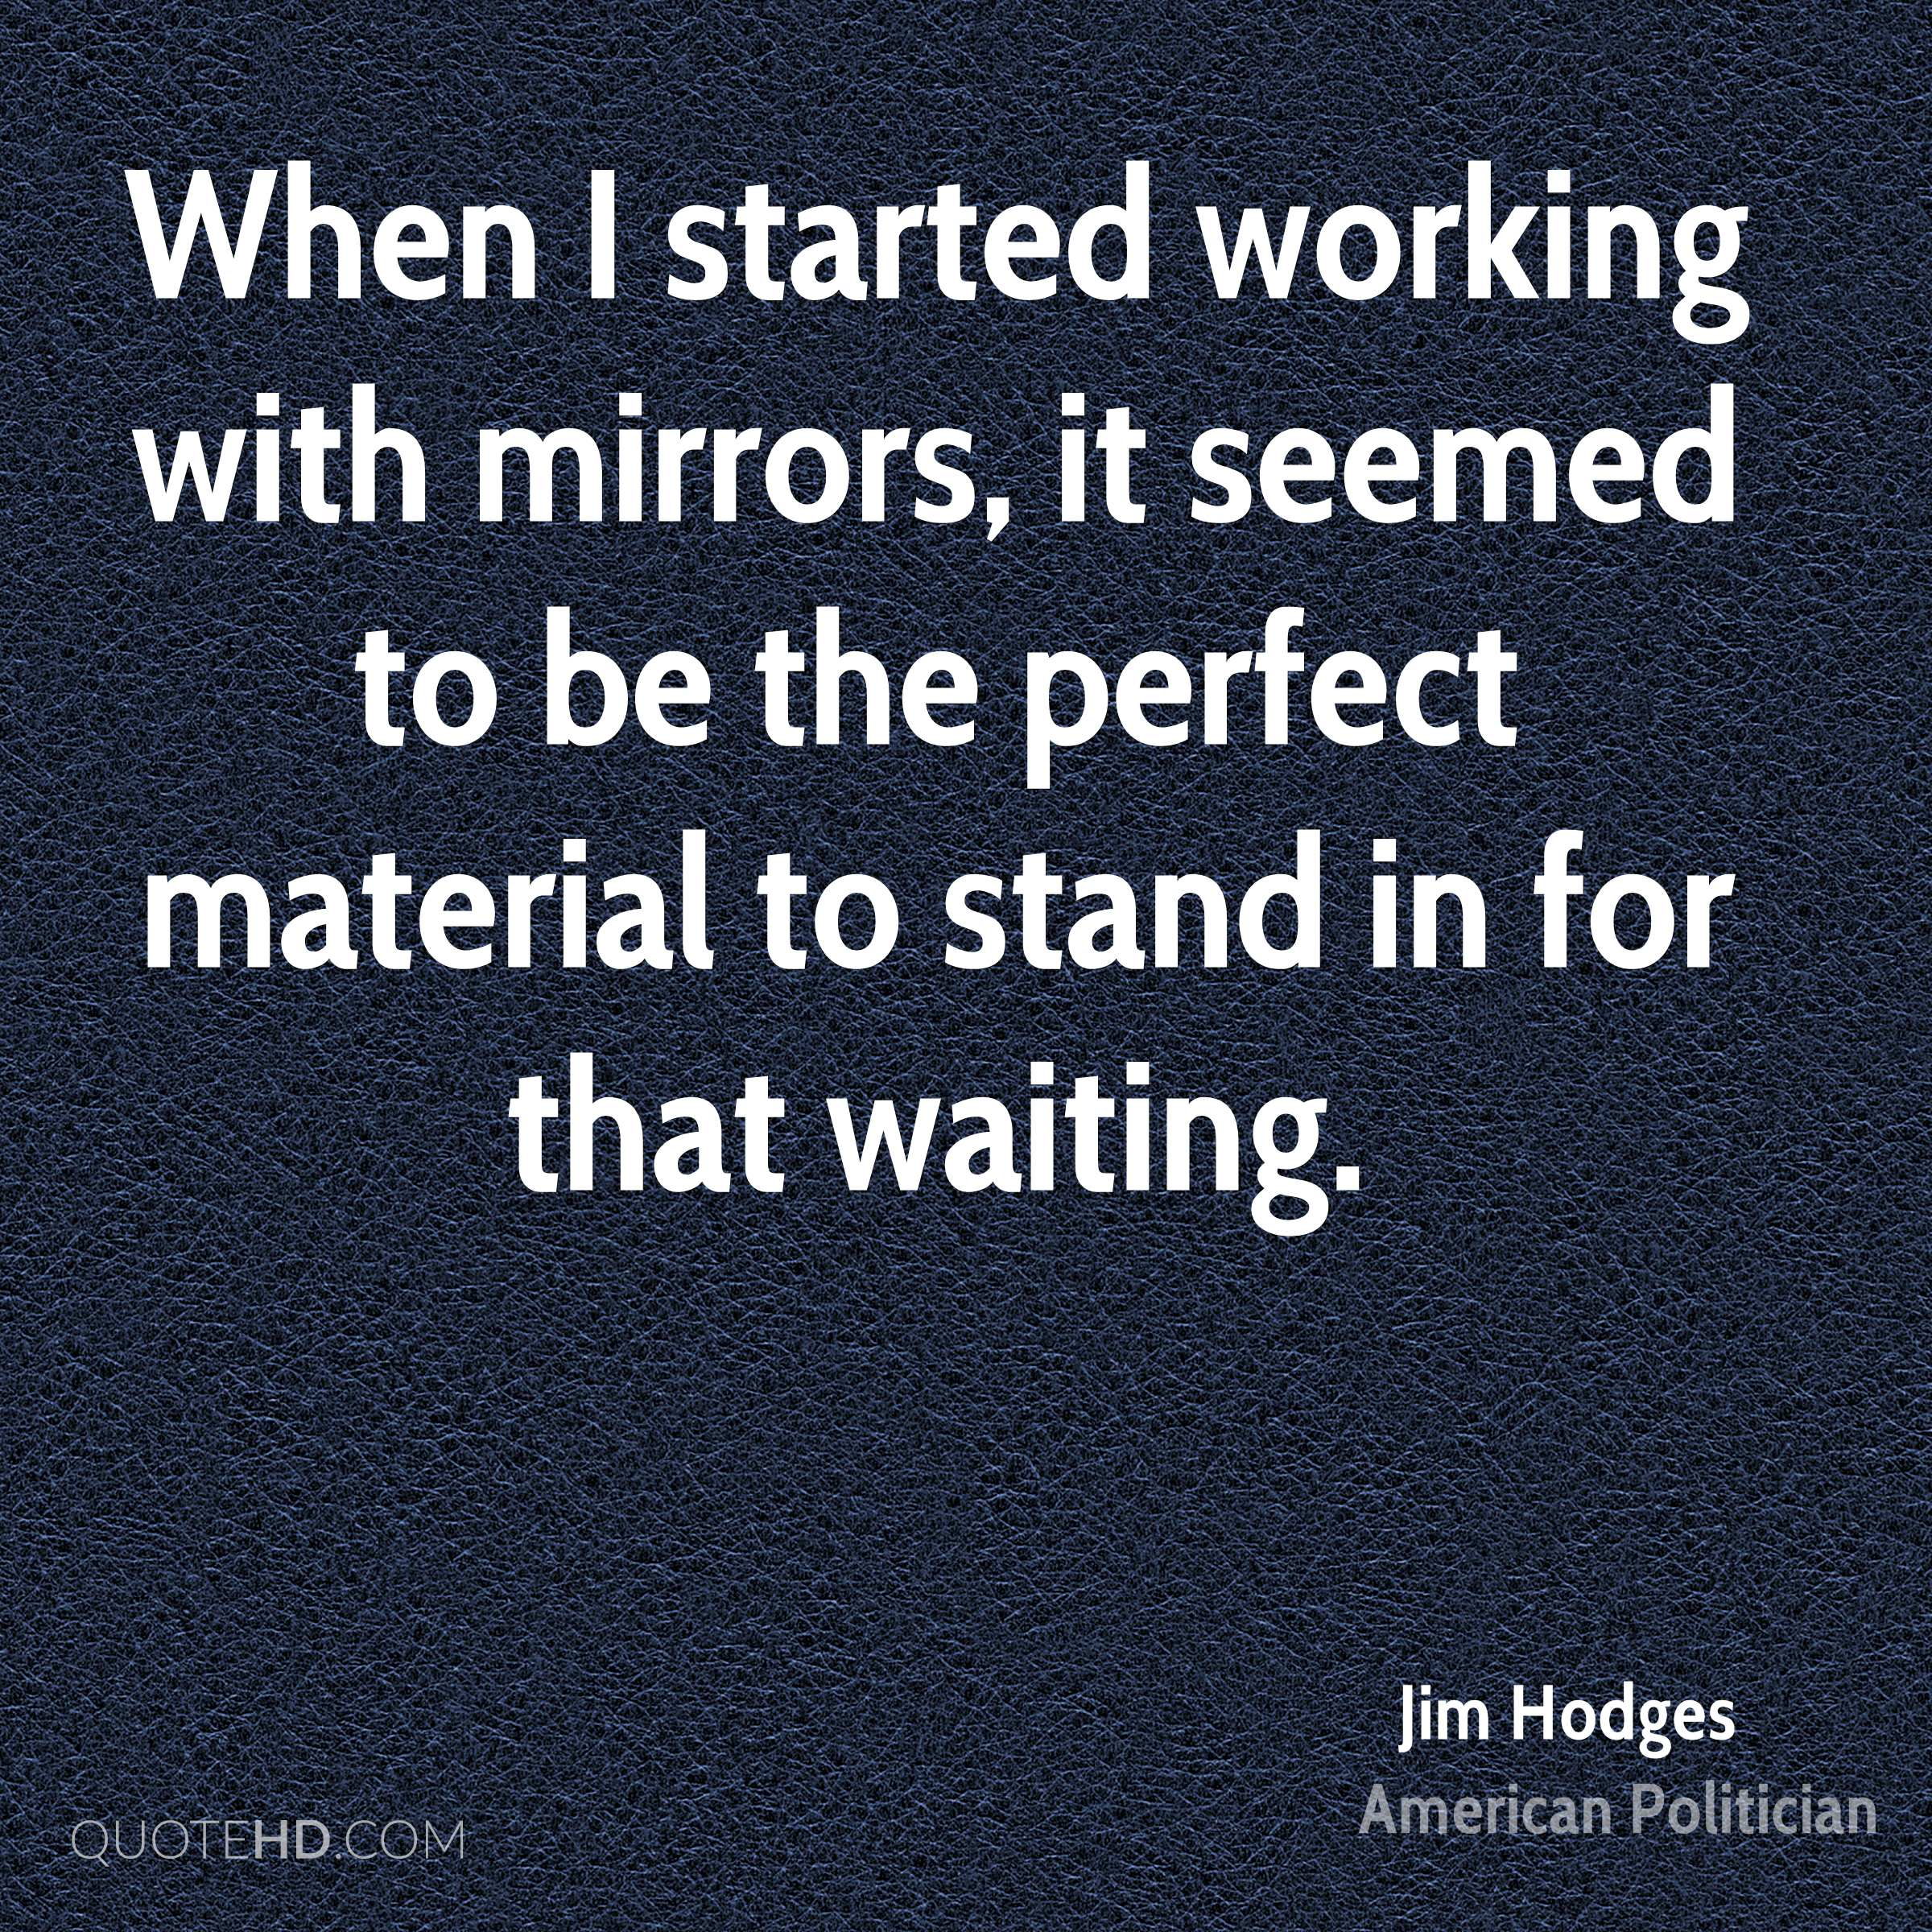 When I started working with mirrors, it seemed to be the perfect material to stand in for that waiting.